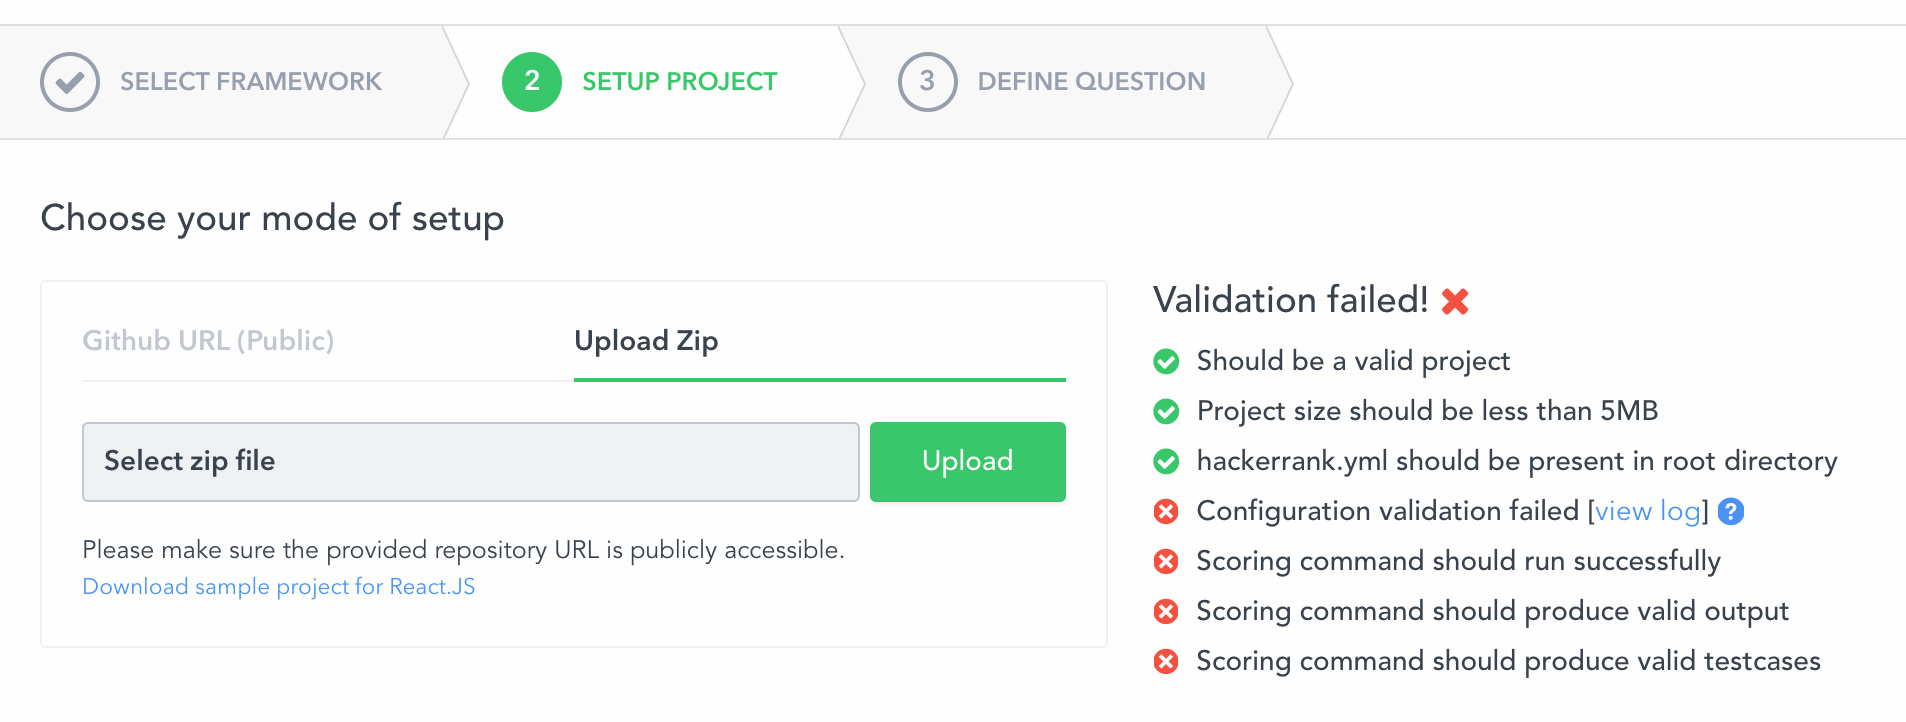 Creating a Front-end, Back-end or Full-stack Question